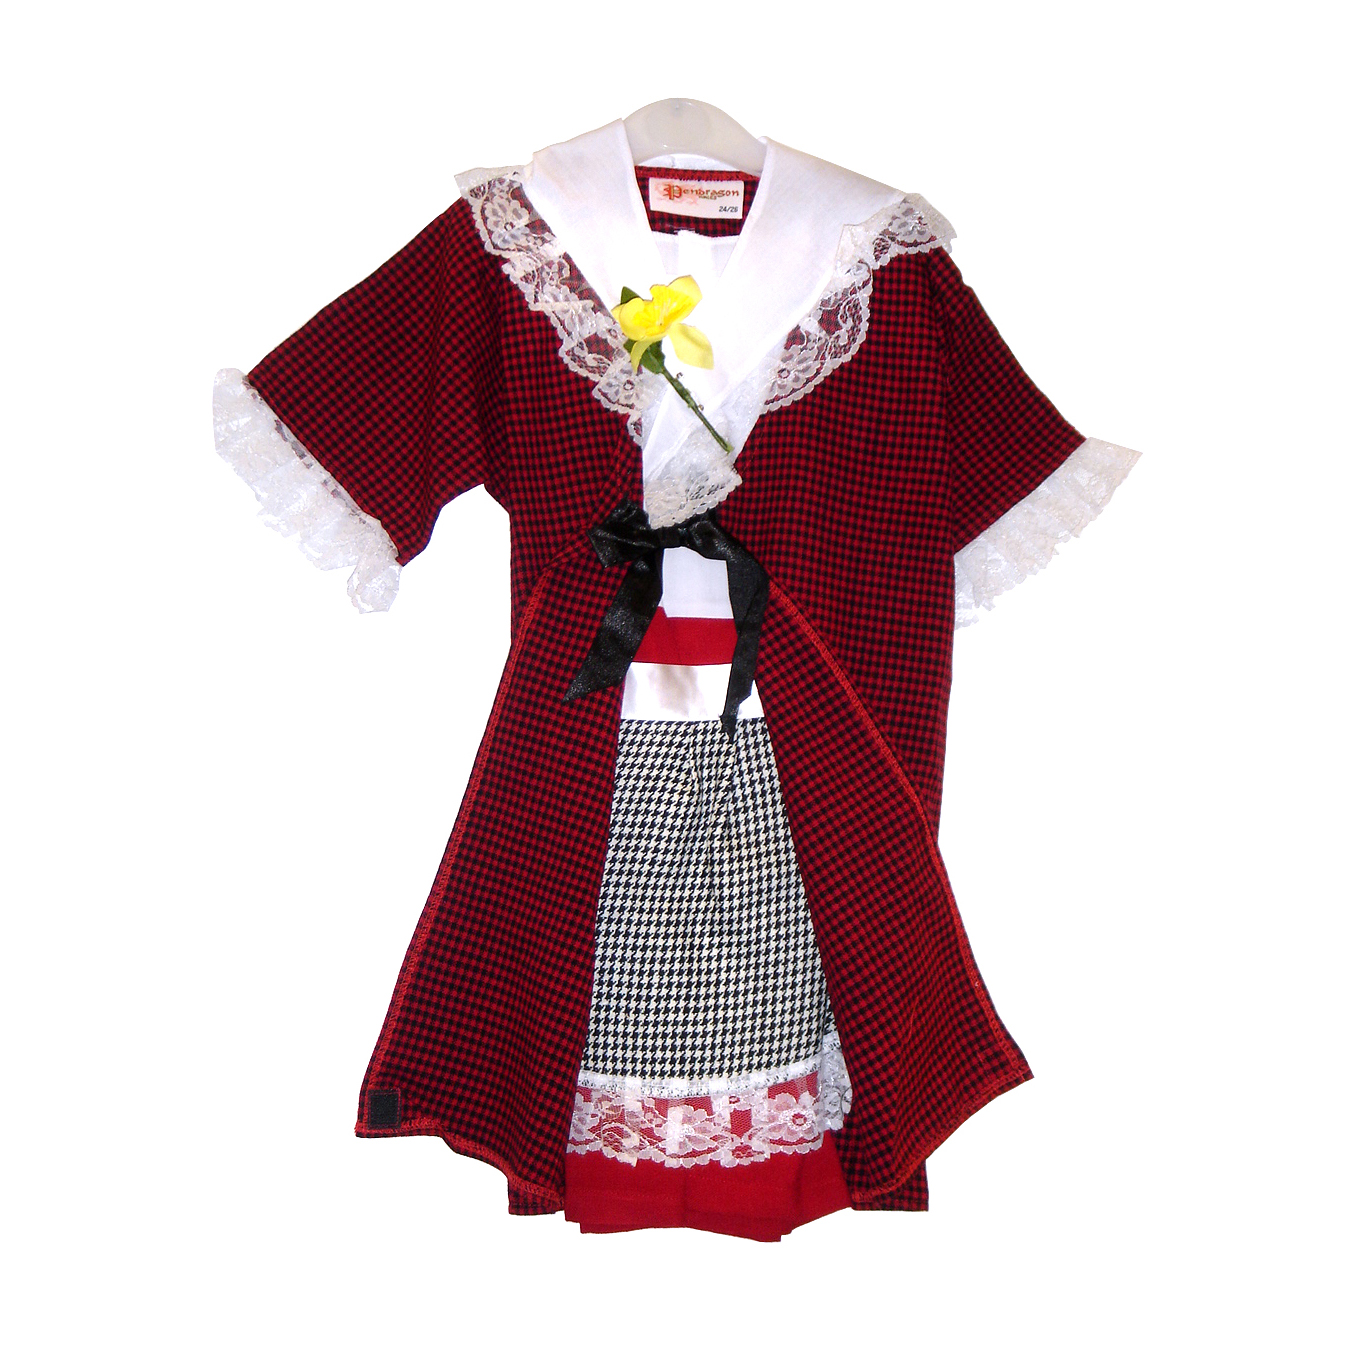 ST DAVIDS DAY WELSH COSTUME 1/2